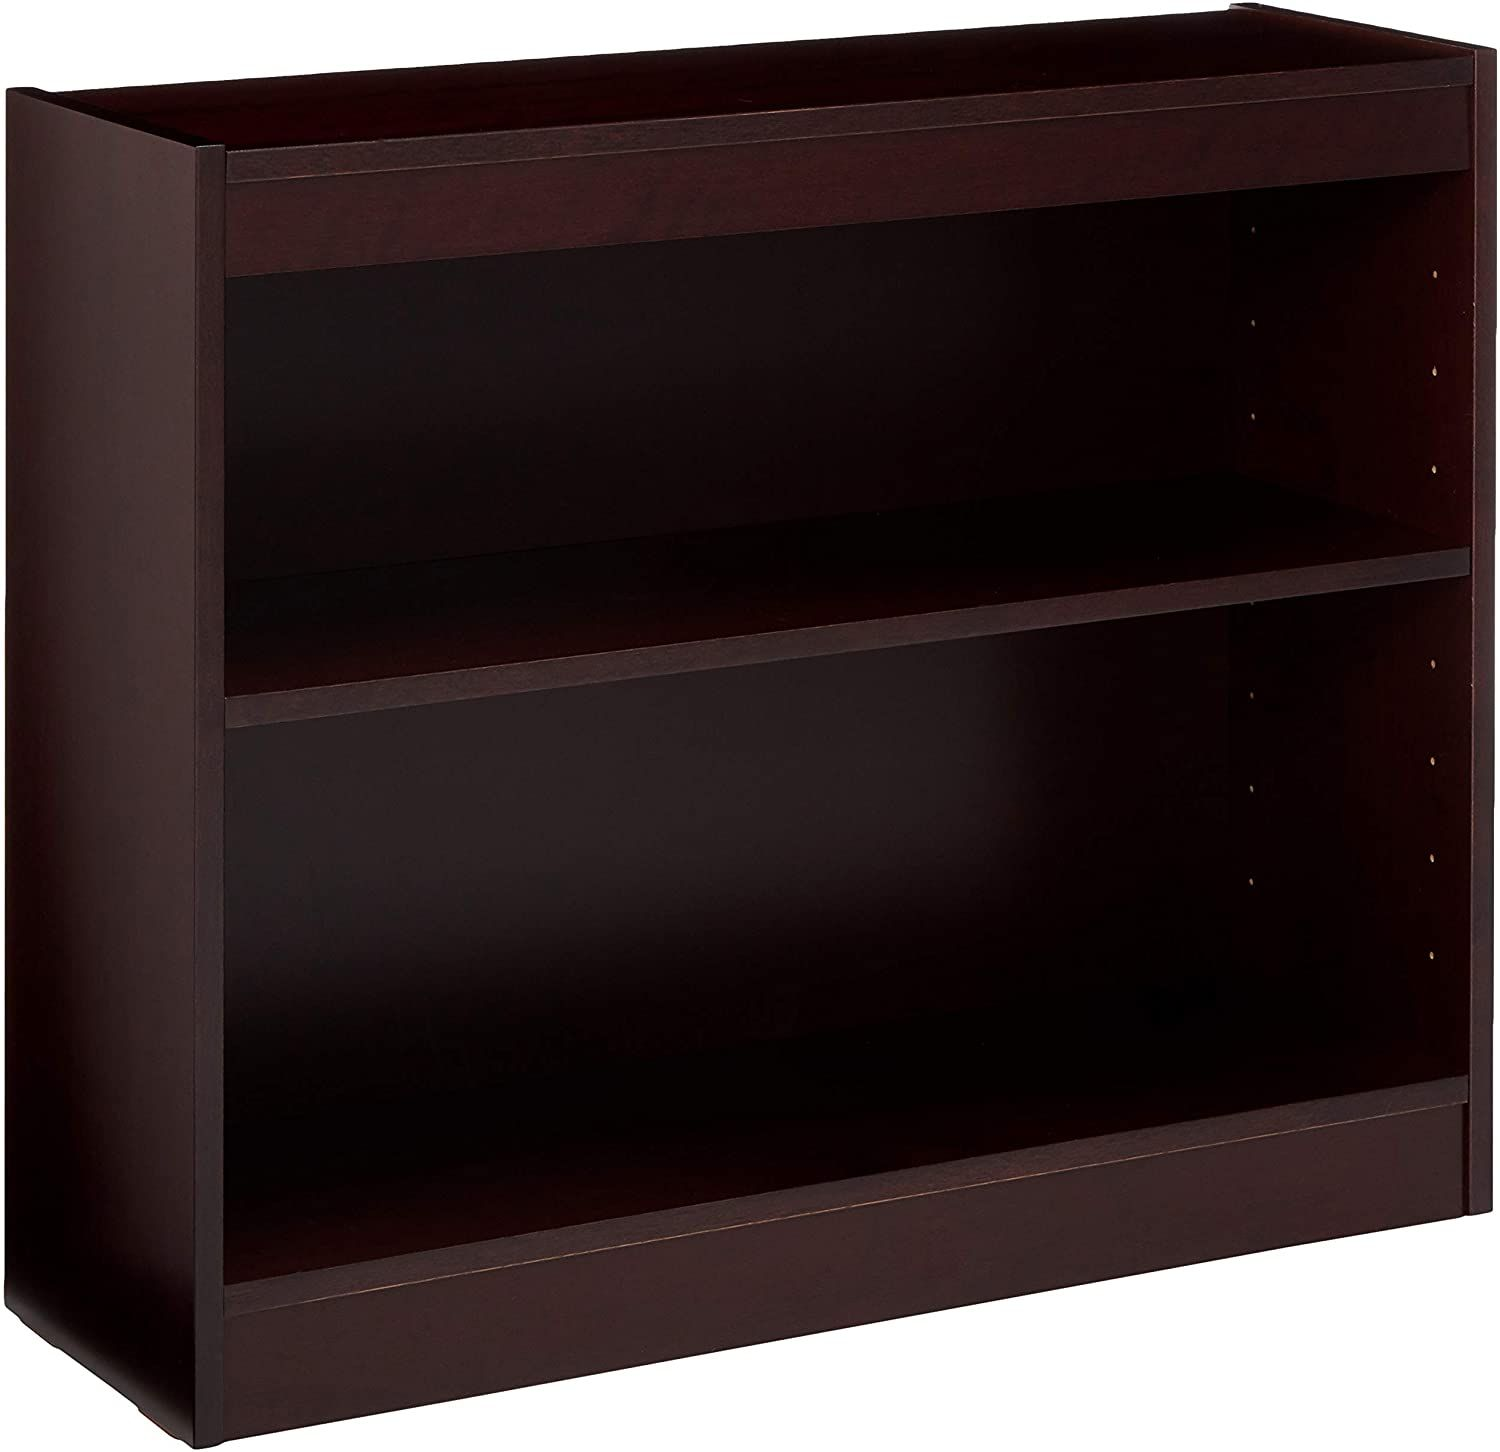 Lorell 2 Shelf Panel Bookcase 36 By 12 By 30 Inch Mahogany In 2020 Shelves Bookcase Mahogany Furniture